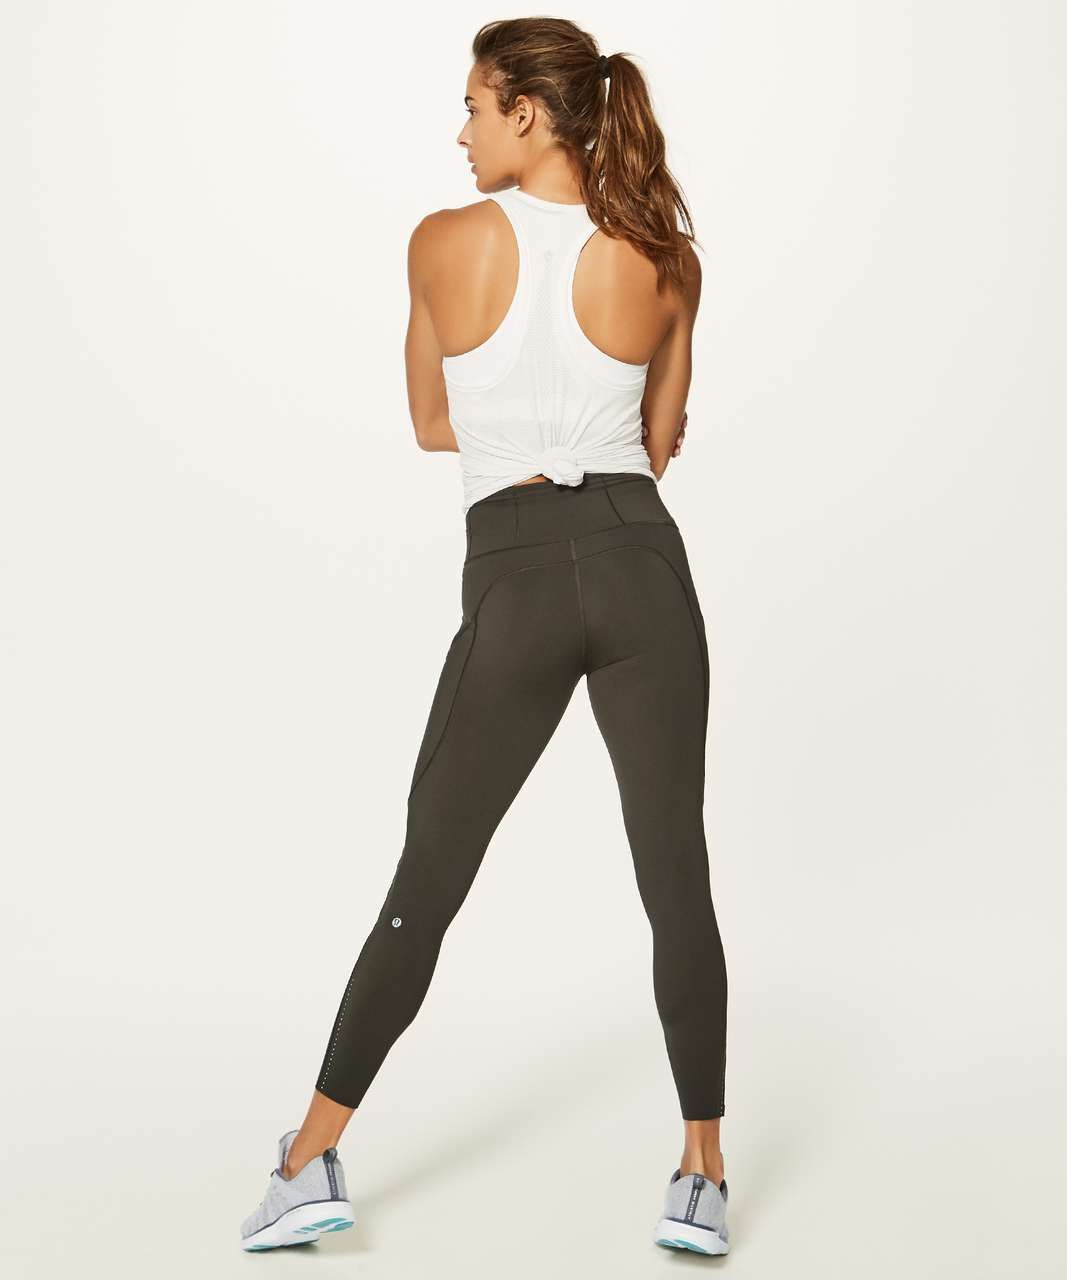 5854414fa0dd37 Lululemon Fast & Free 7/8 Tight II *Nulux 25